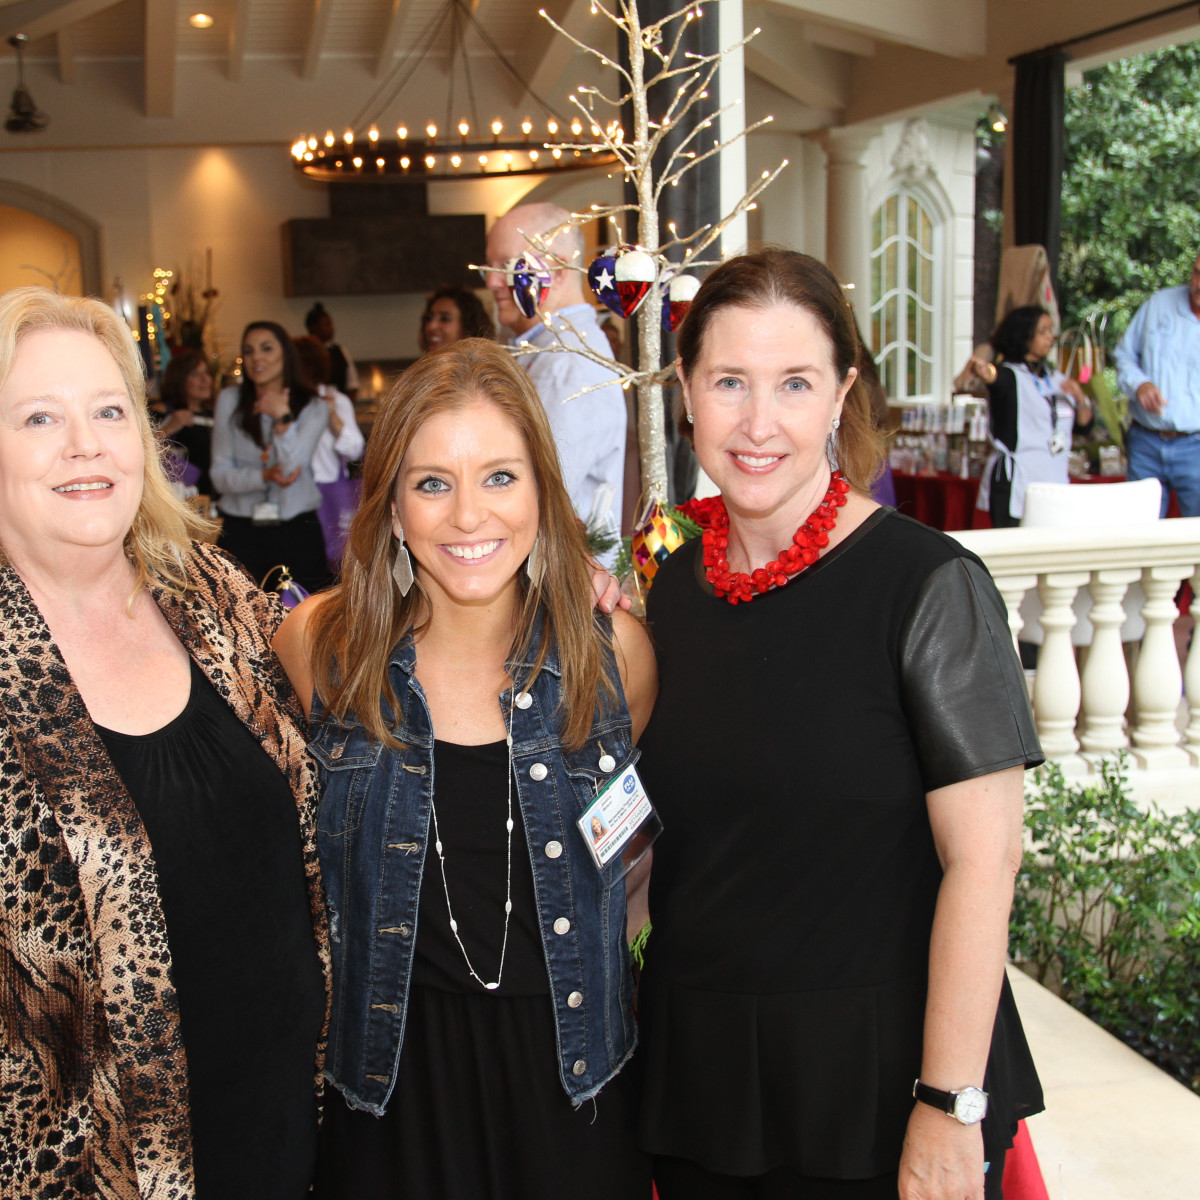 Paige Fertitta Children's Art Project trunk show MD Anderson Children's Art Project's Sue Molin, Jessica Wilson, Sara Longley